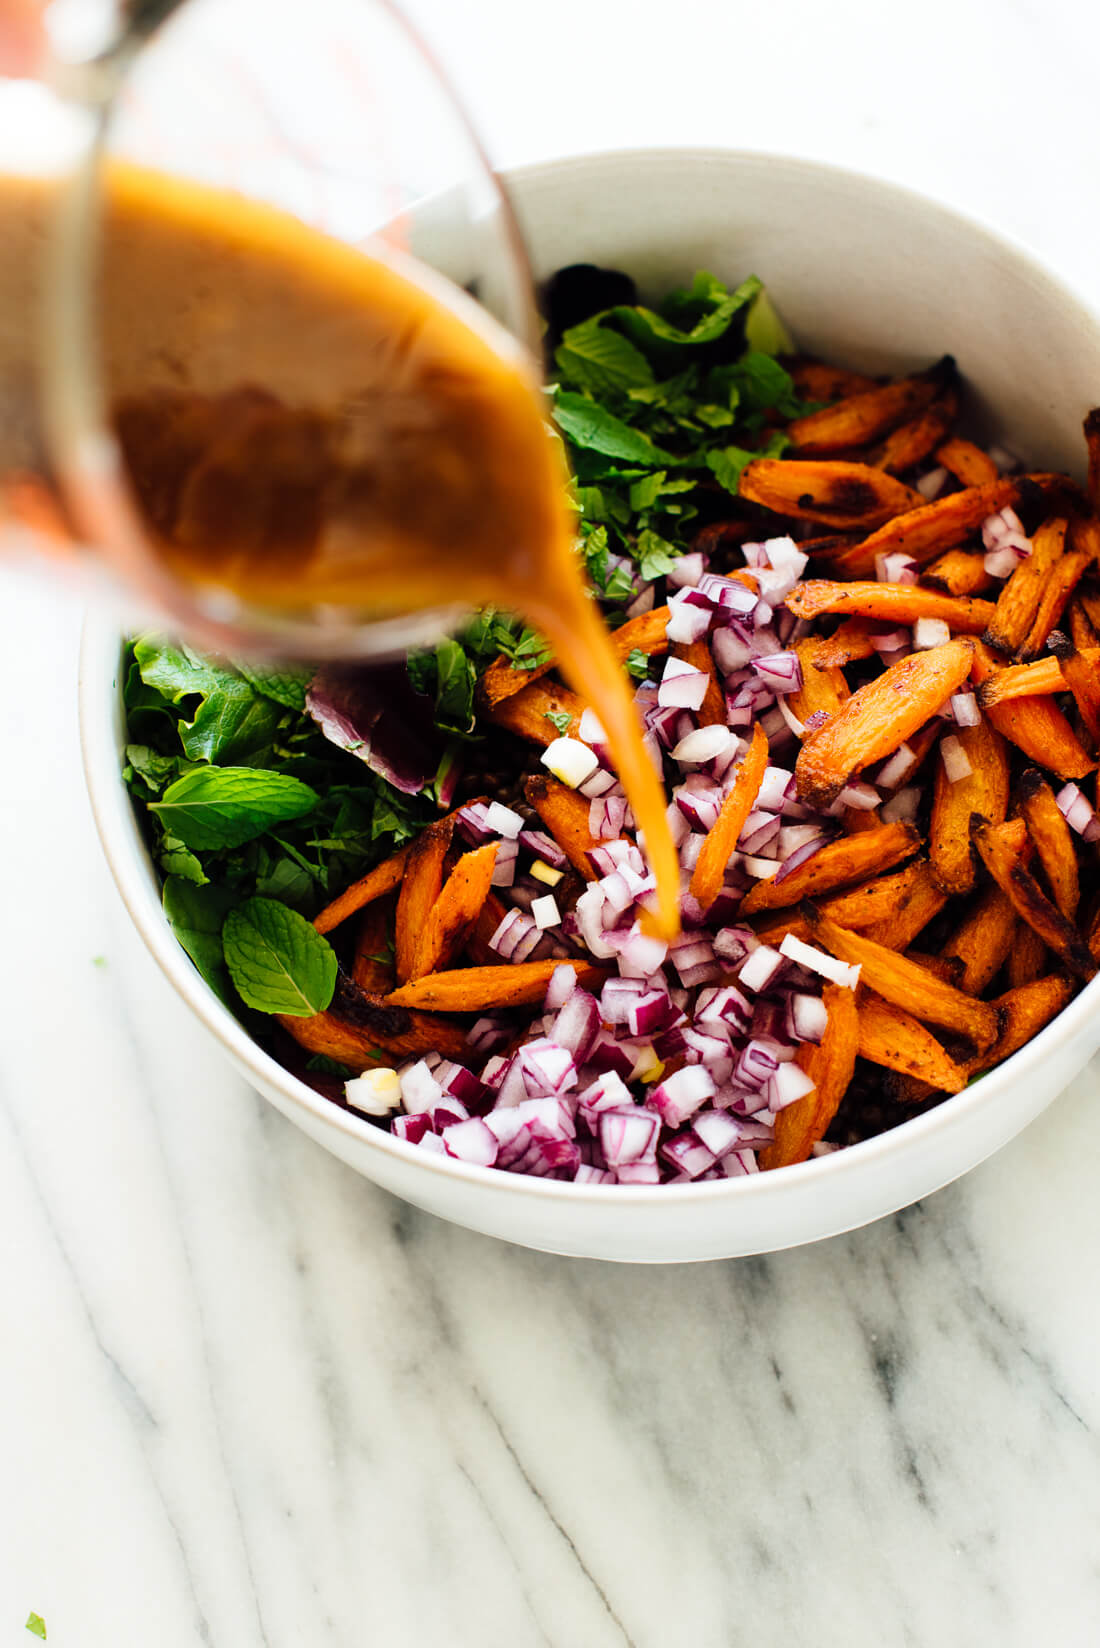 pouring salad dressing onto masala lentil salad